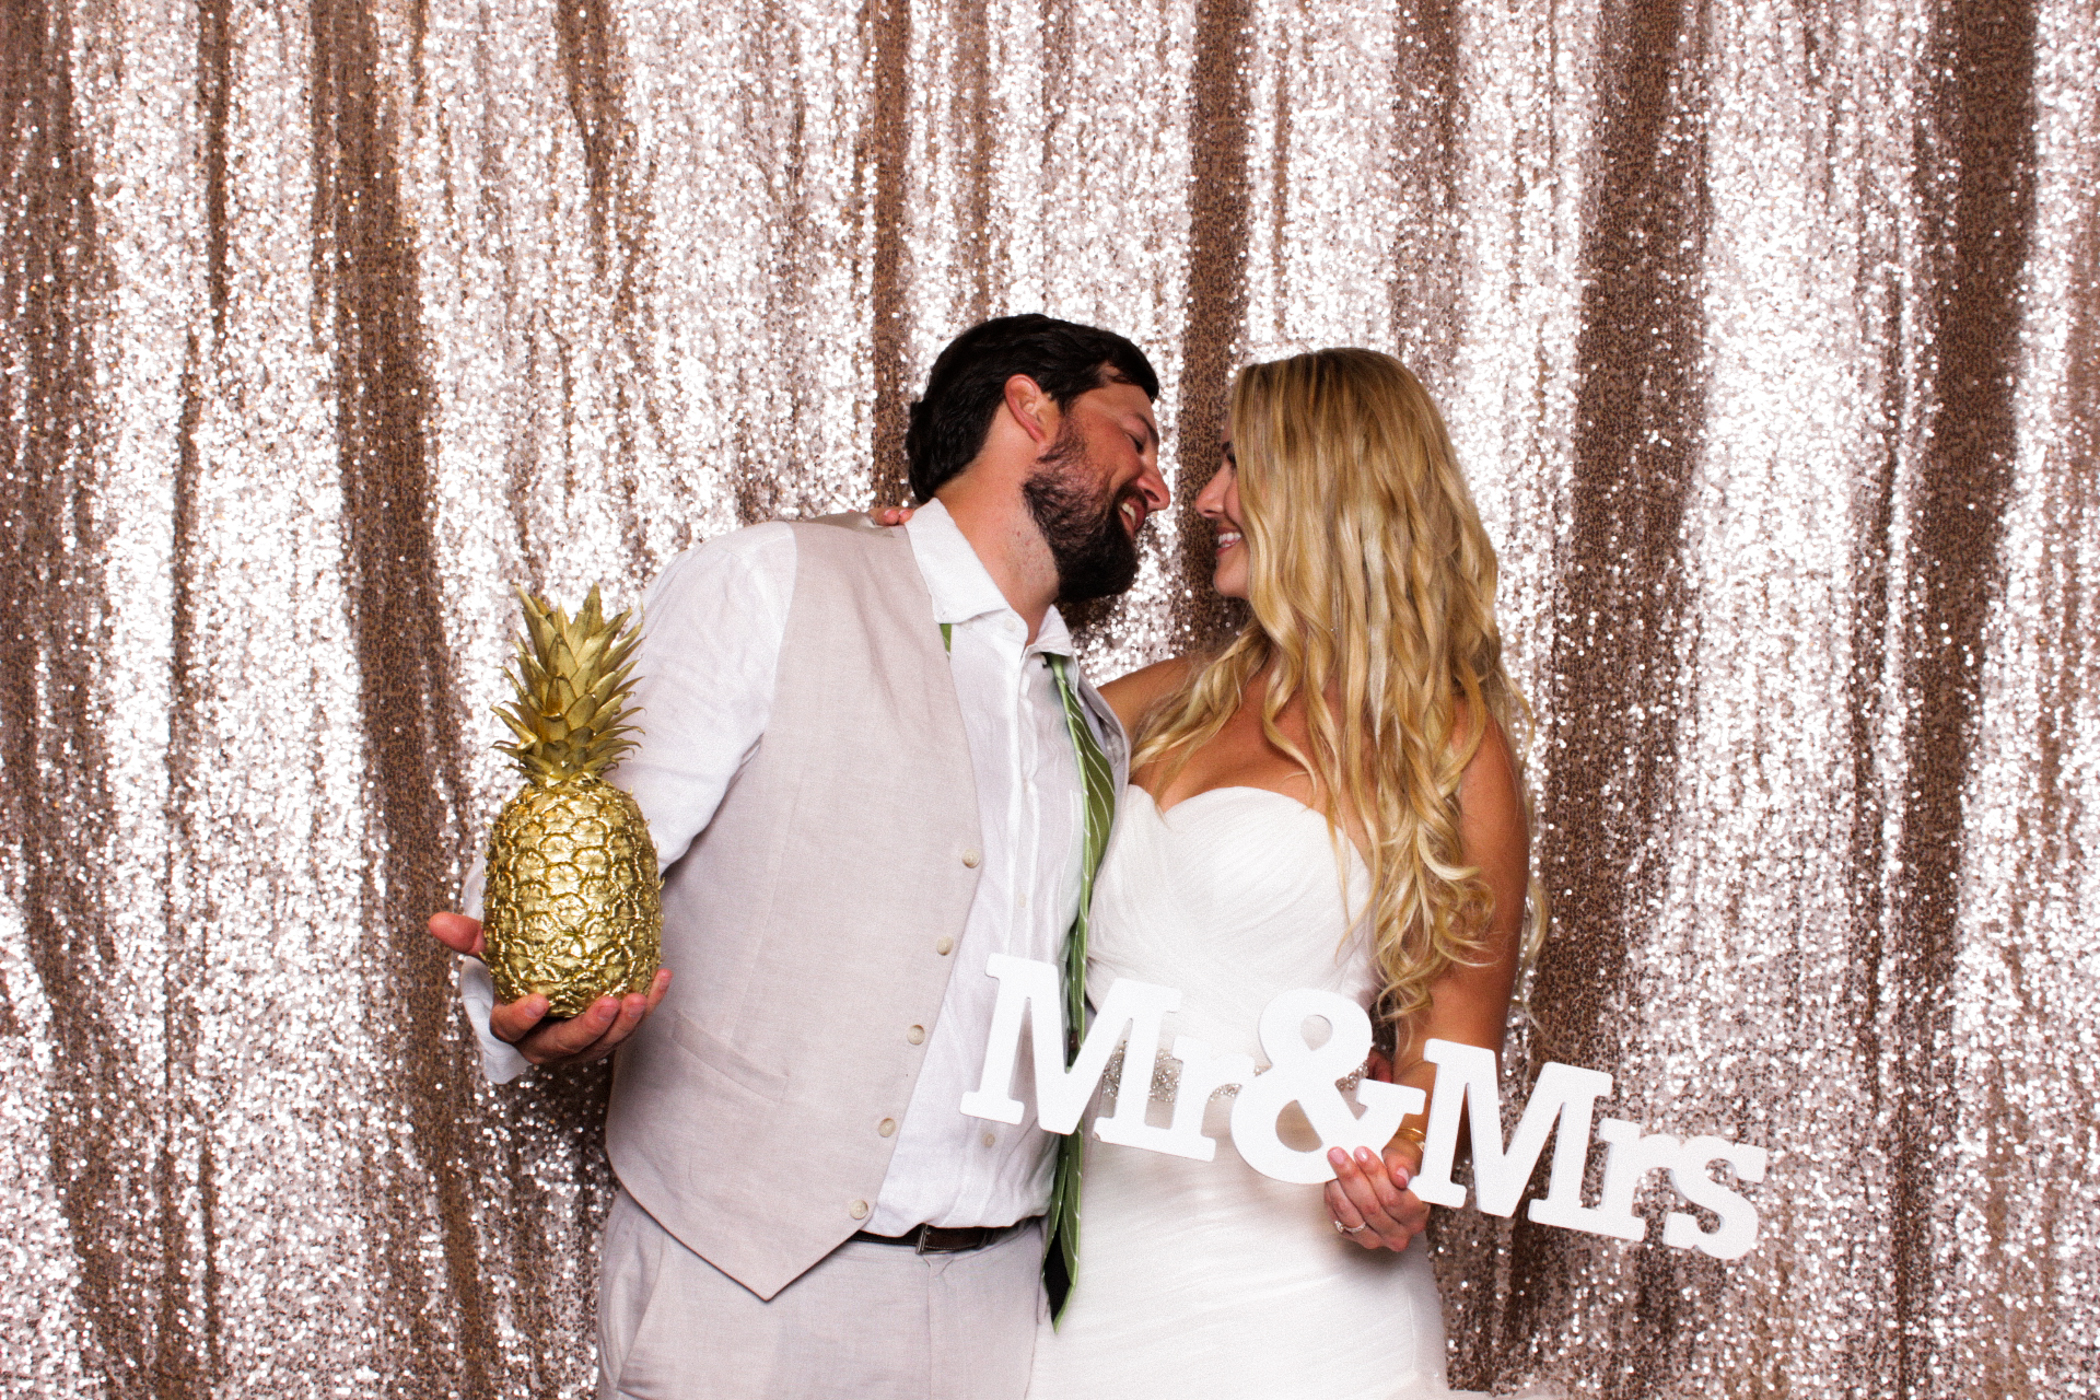 The_Reverie_Booth-Boca_Raton_Photobooth-Wedding_Photobooth_Florida-Florida_Photobooth_Rental-Wedding_Photobooth-075.jpg